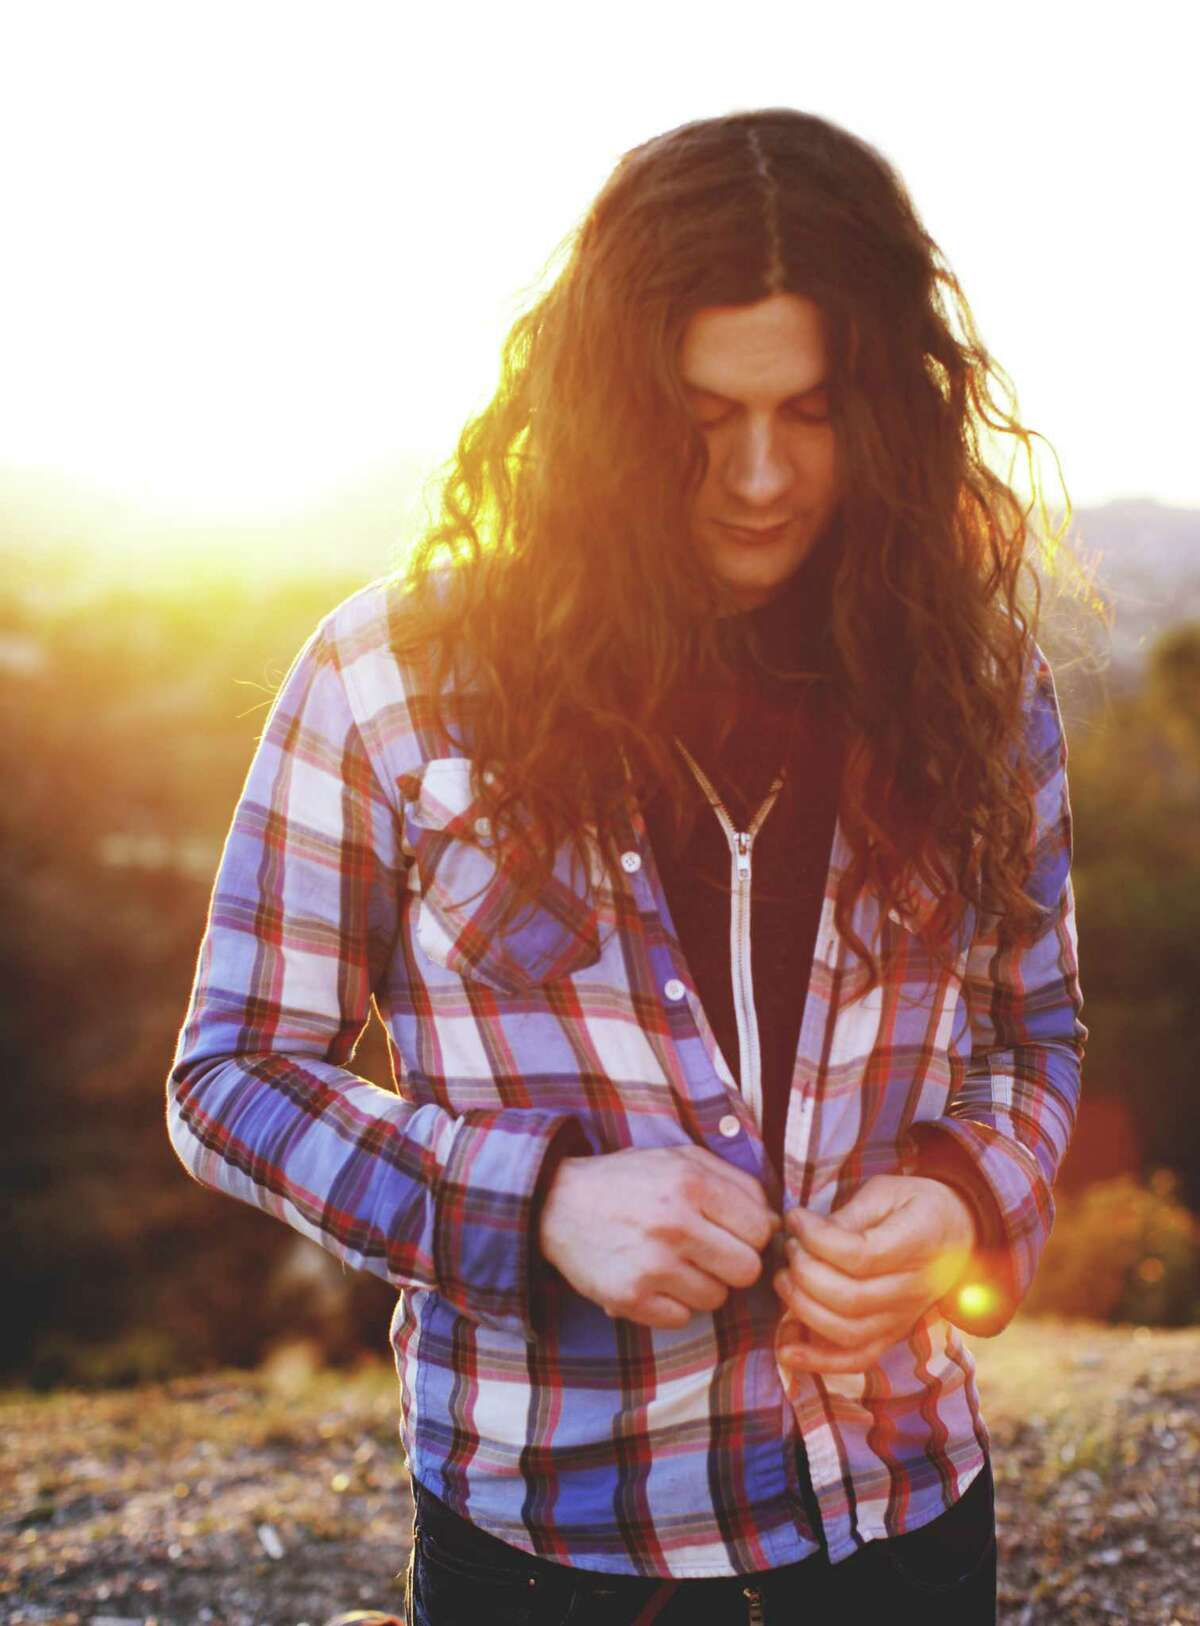 """Kurt Vile: Like his former bandmate Adam Granduciel in War on Drugs, Philadelphia singer-songwriter Vile evokes classic rock icons like Springsteen, Dylan, maybe Dire Straits' Mark Knopfler in an abstract way, as if he learned to play by overhearing his parents' records from a distant bedroom. Stream-of-conscious lyrics ride a bright guitar groove on songs such as """"Pretty Pimpin'"""" and, from his acclaimed 2018 album """"Bottle It In,"""" """"Loading Zone."""" 8 p.m. Friday. Gruene Hall, 1281 Gruene Road. Sold out. gruenehall.com - Jim Kiest"""